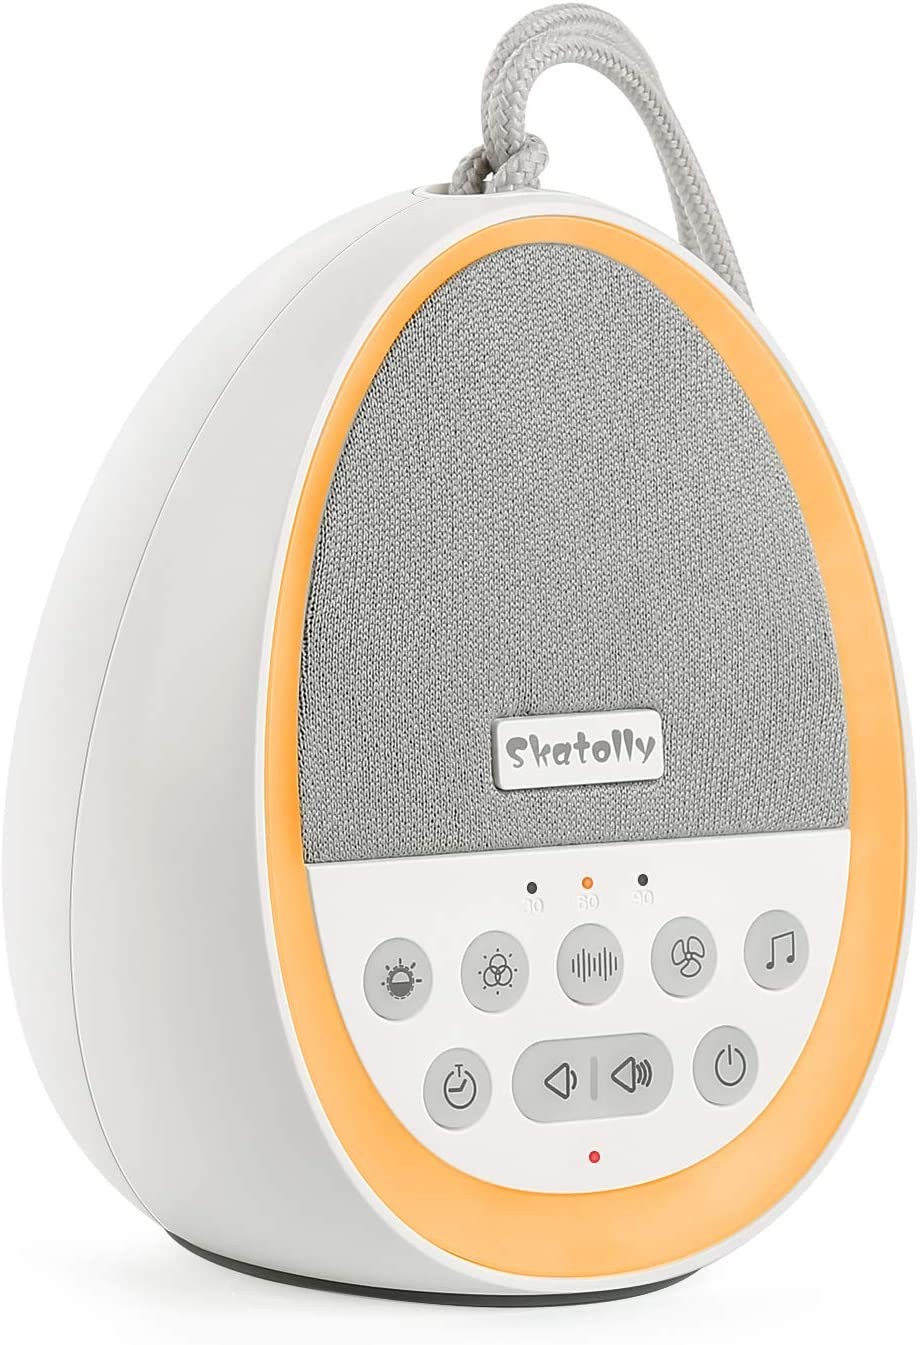 Skatolly White Noise Machine, Sleep Sound Machine with Baby Night Light for Sleeping, 29 High Fidelity Nature Sounds, Sleep Sound Therapy for Home, Office, Travel, Baby, Kids and Adults